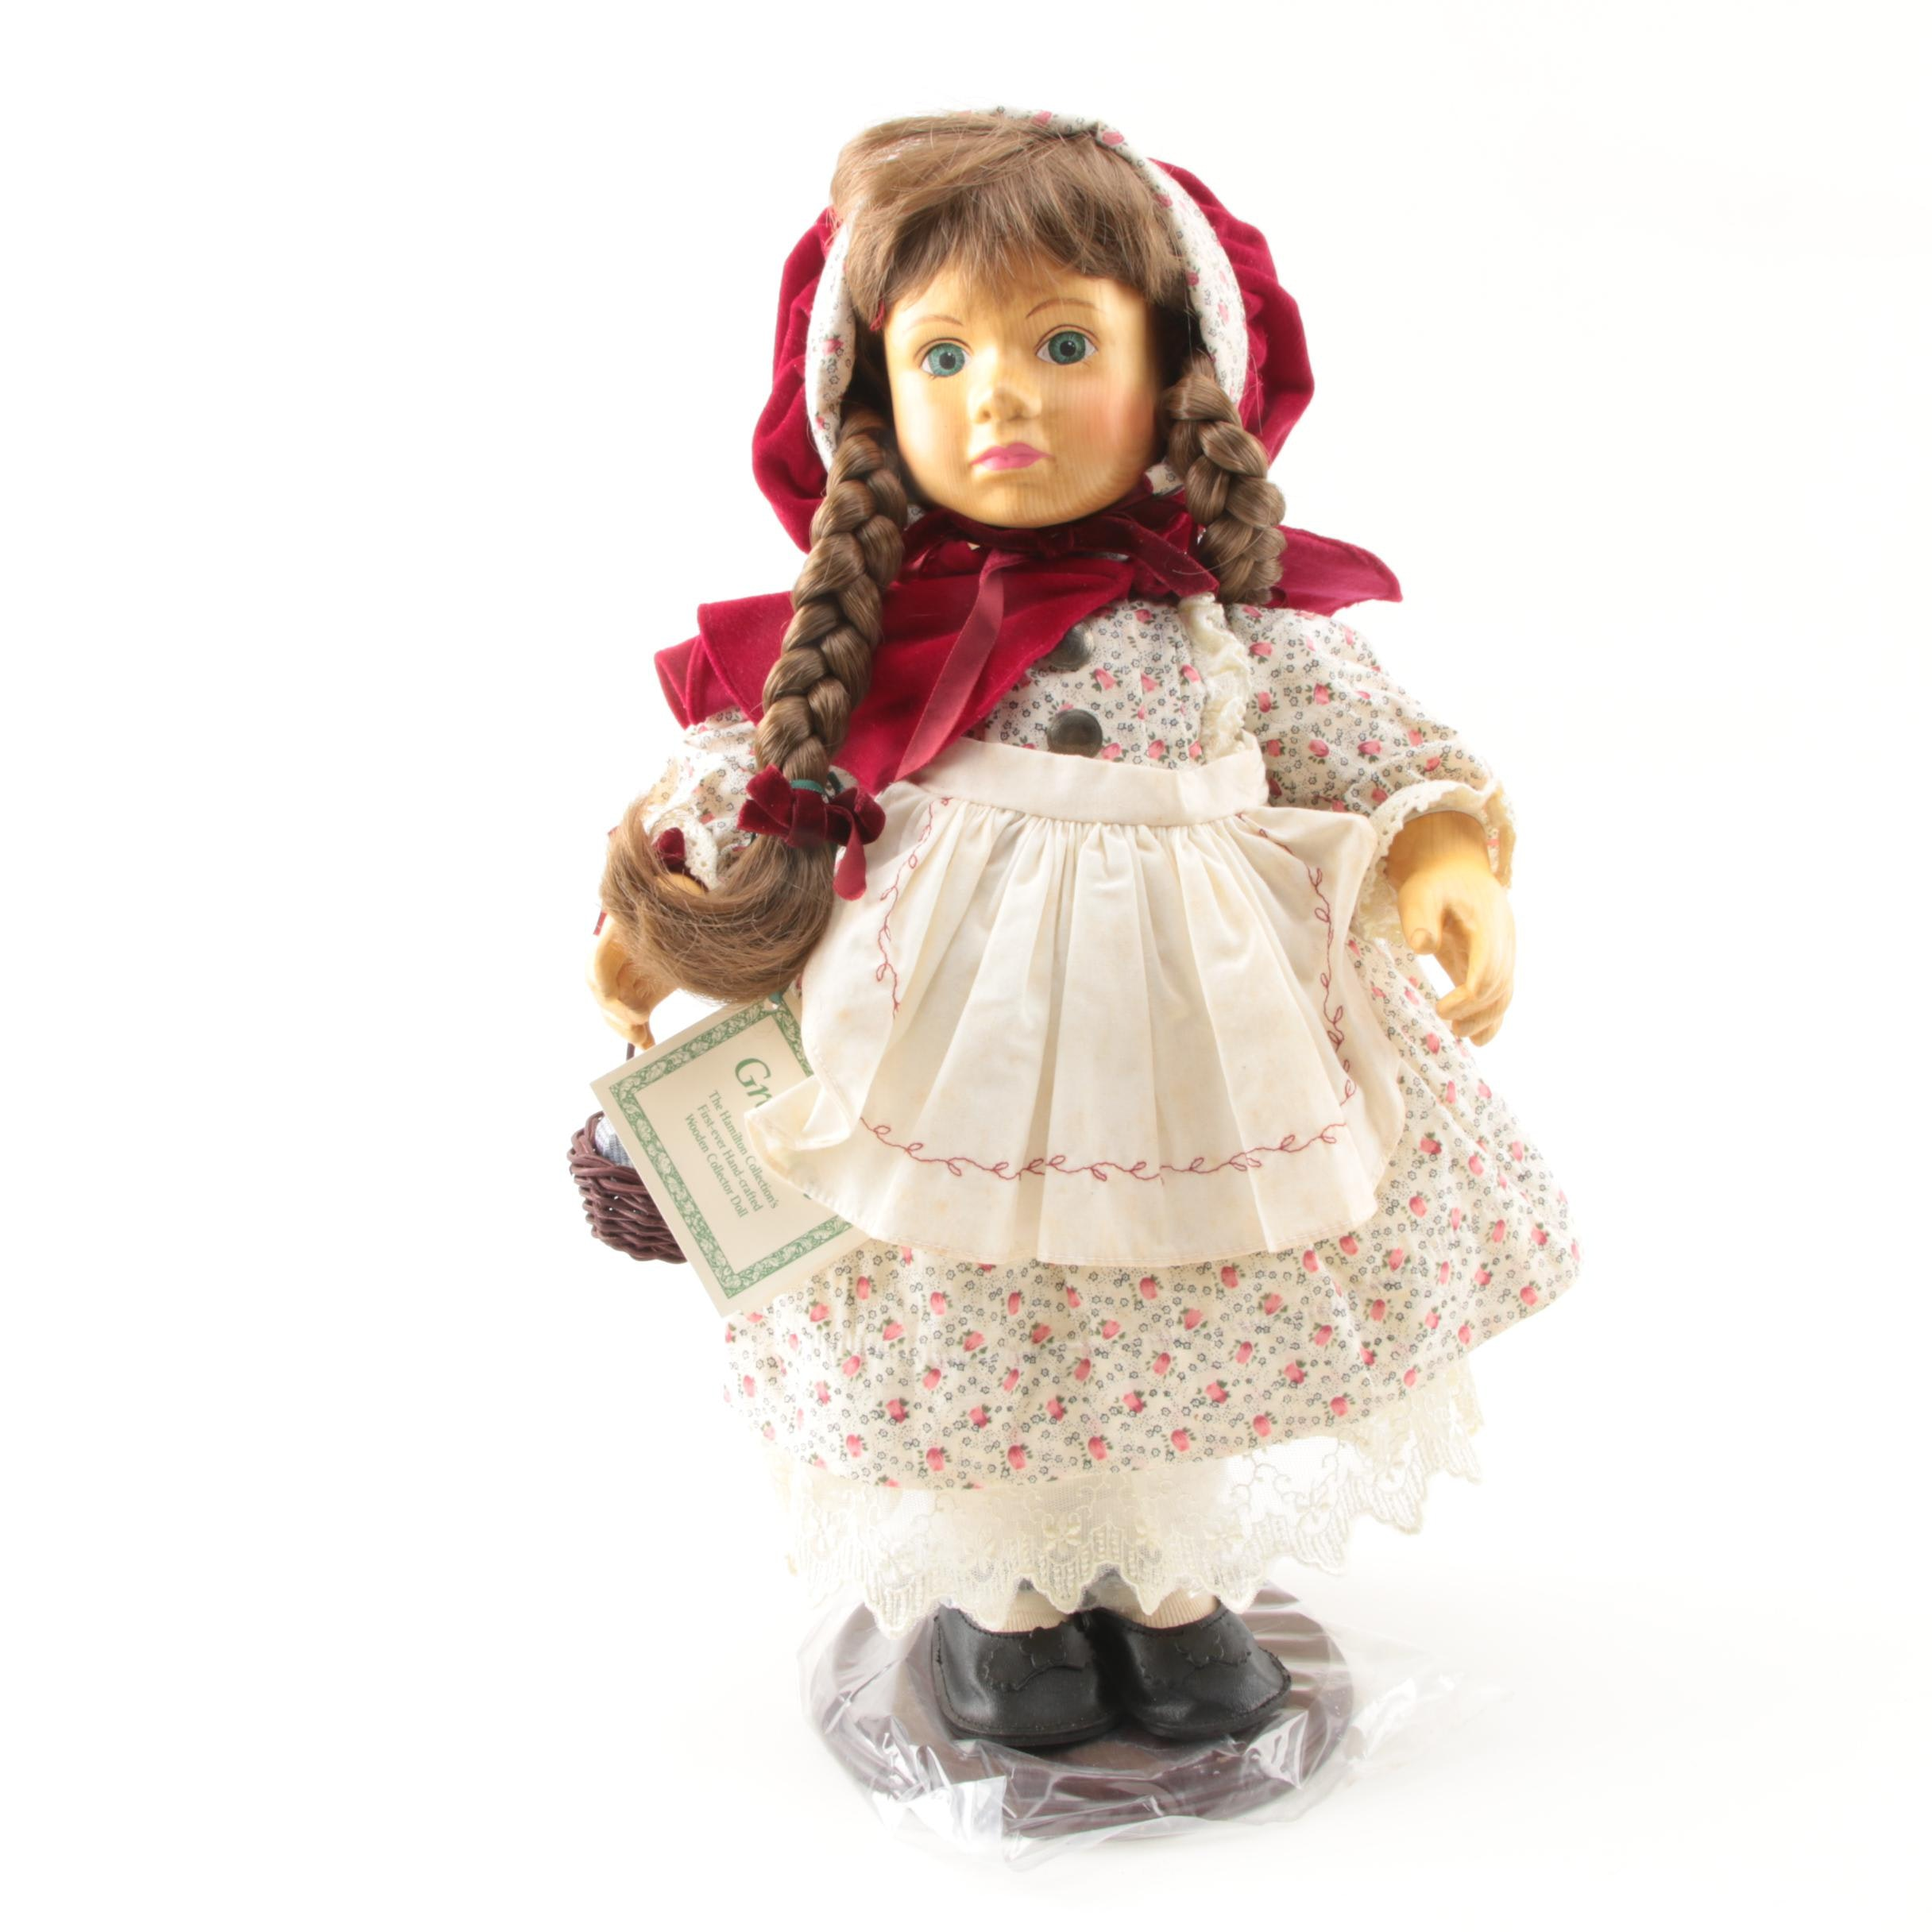 Vintage Limited Edition Hamilton Collection Wood Gretchen Doll